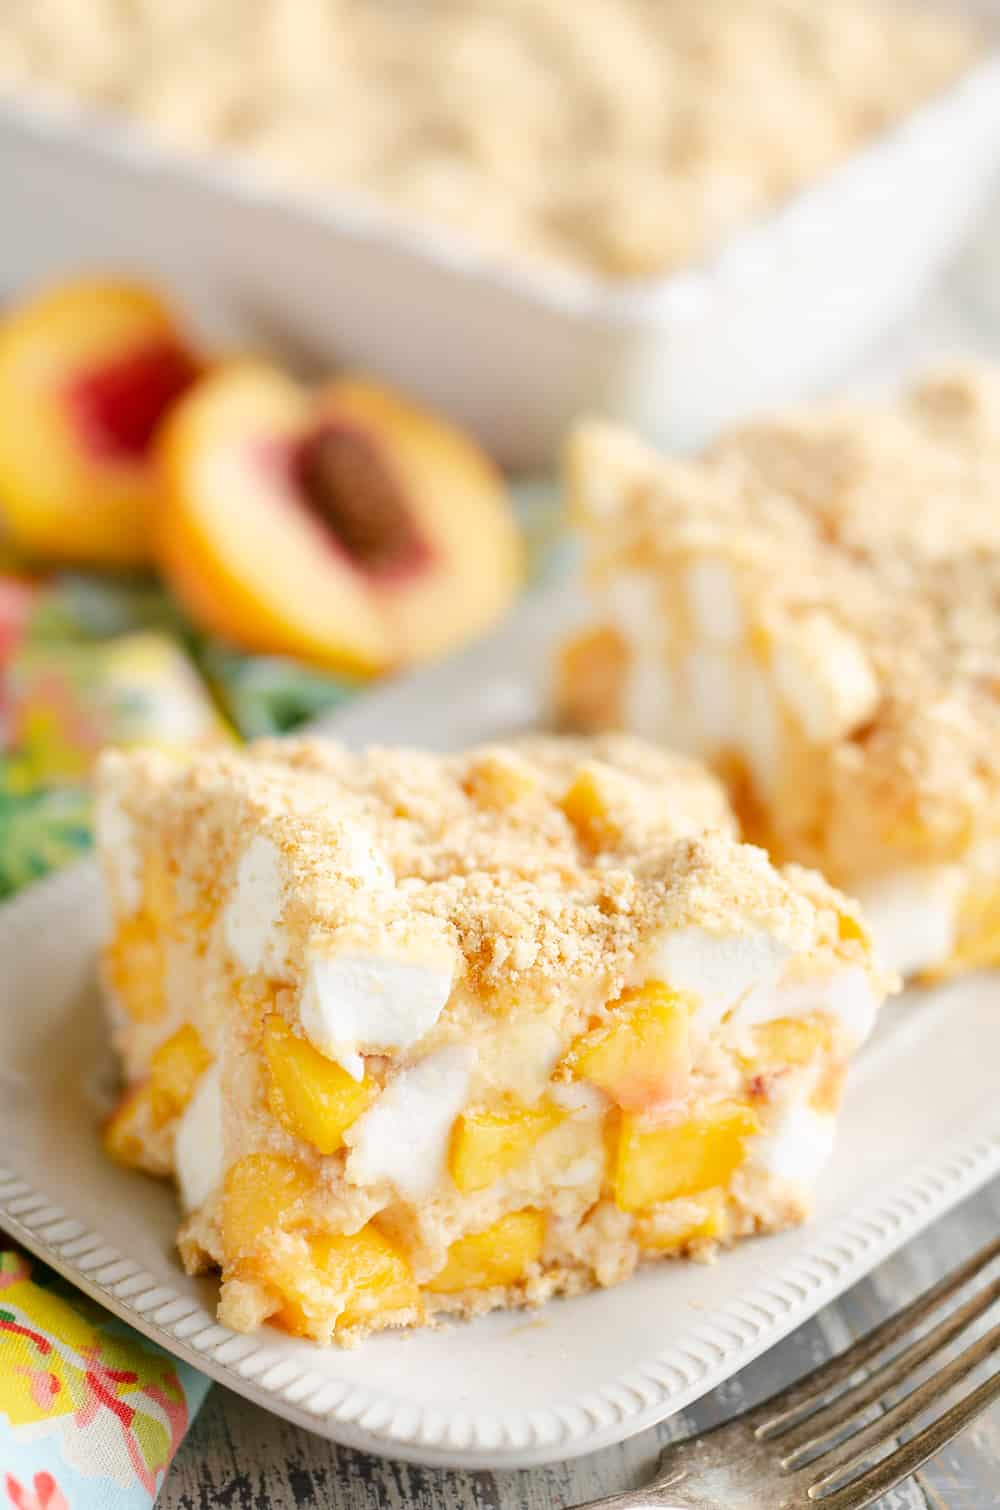 Marshmallow Peach Icebox Dessert piece of dessert